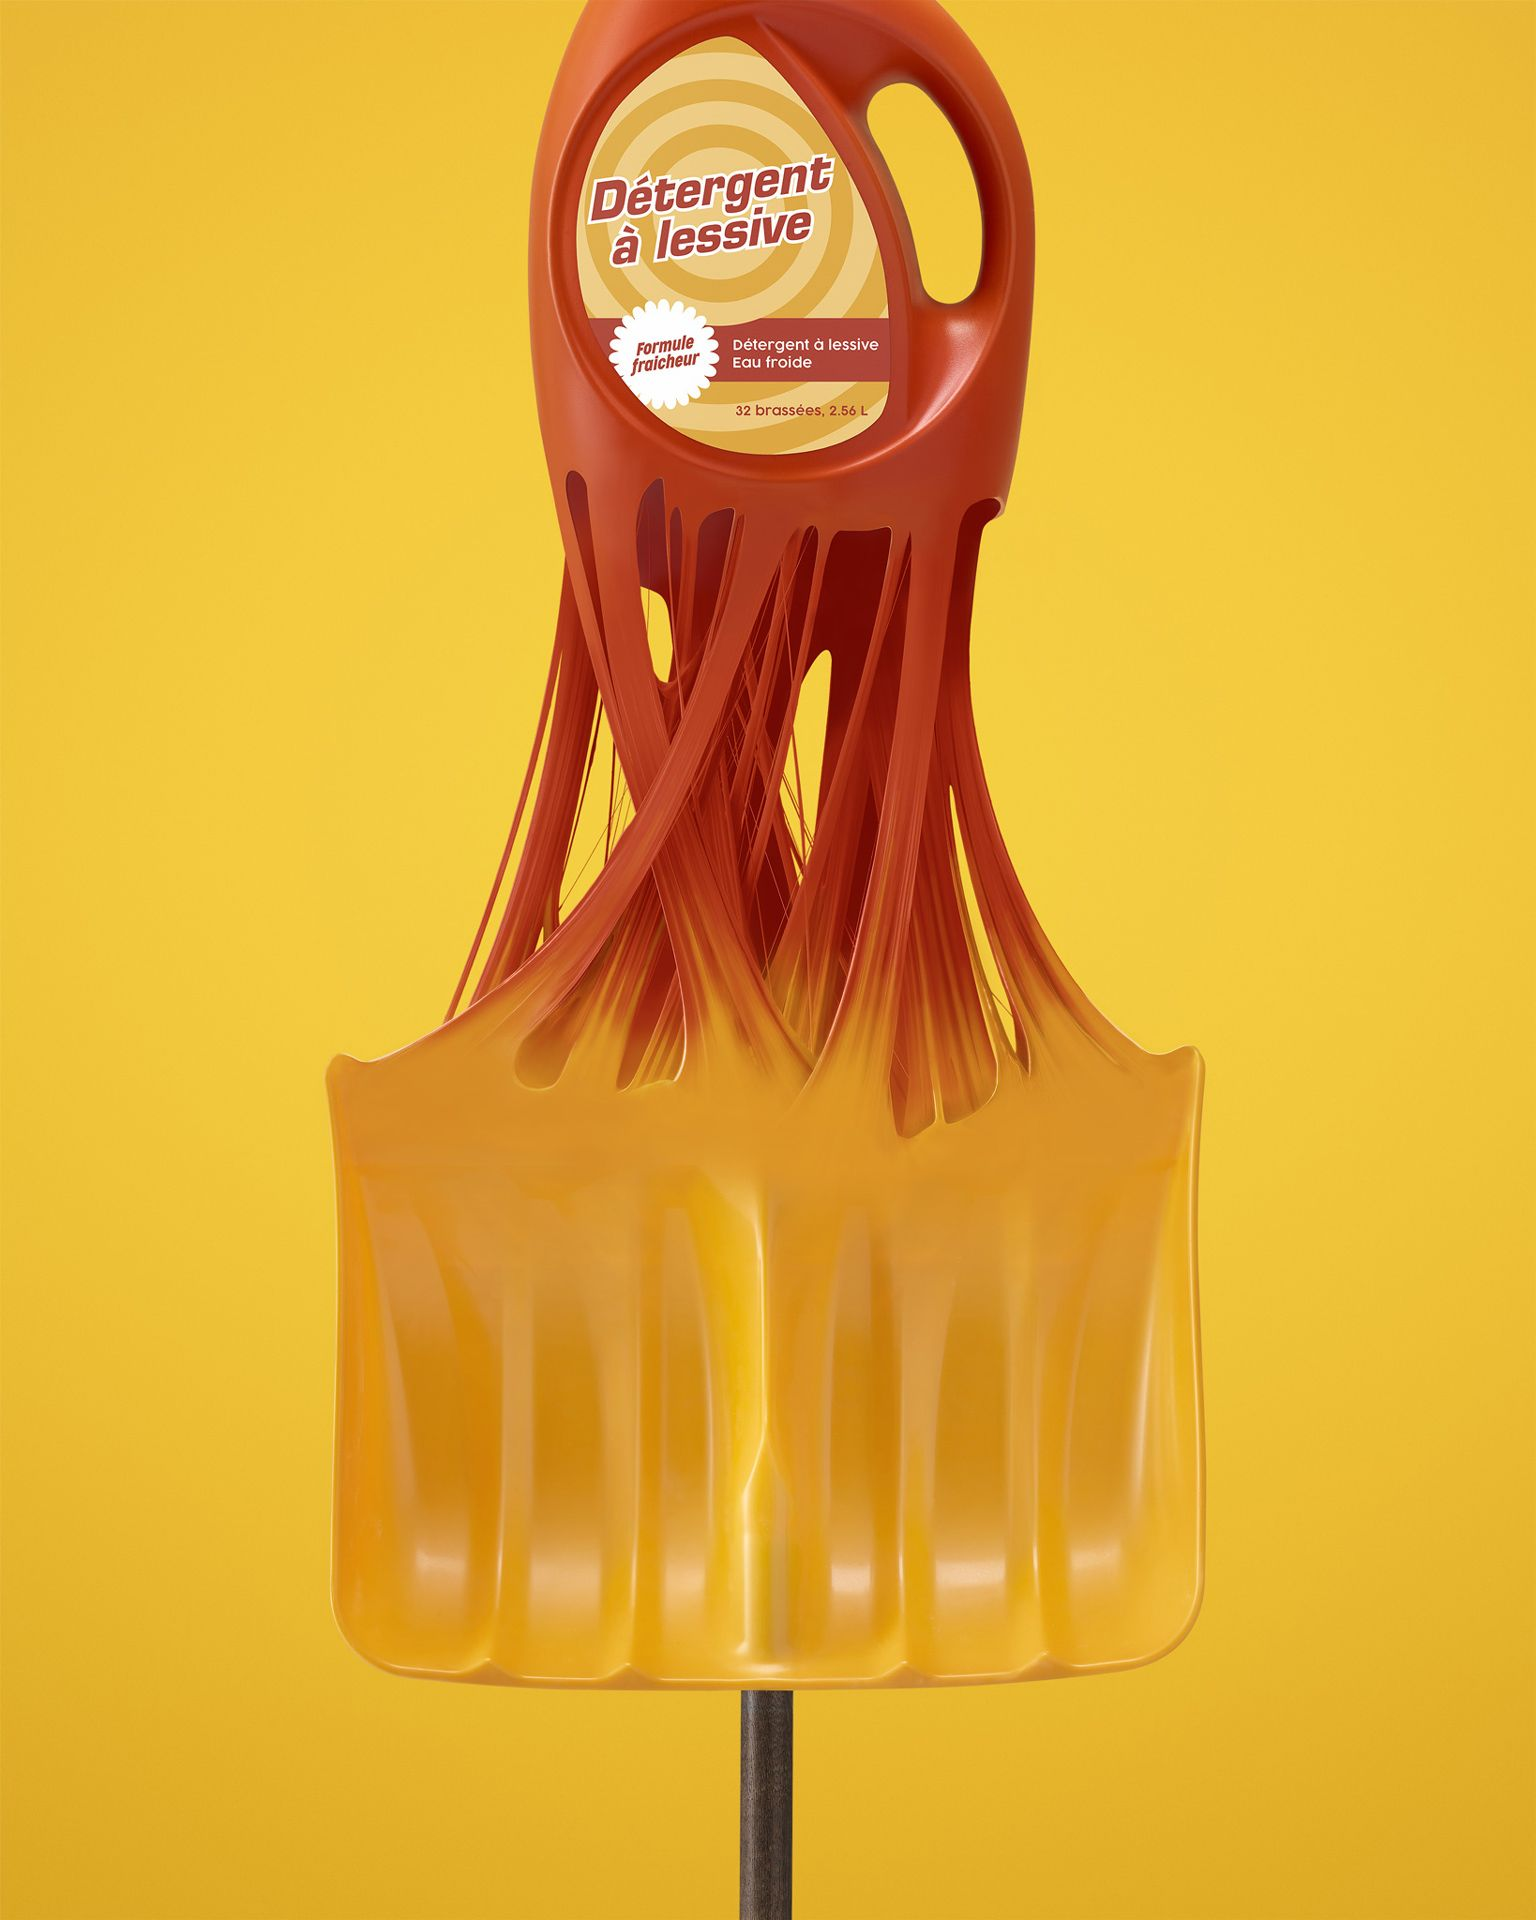 photo manipulation of laundry detergent plastic bottle morphing into a shovel by Mathieu Lévesque for Recyc-Québec